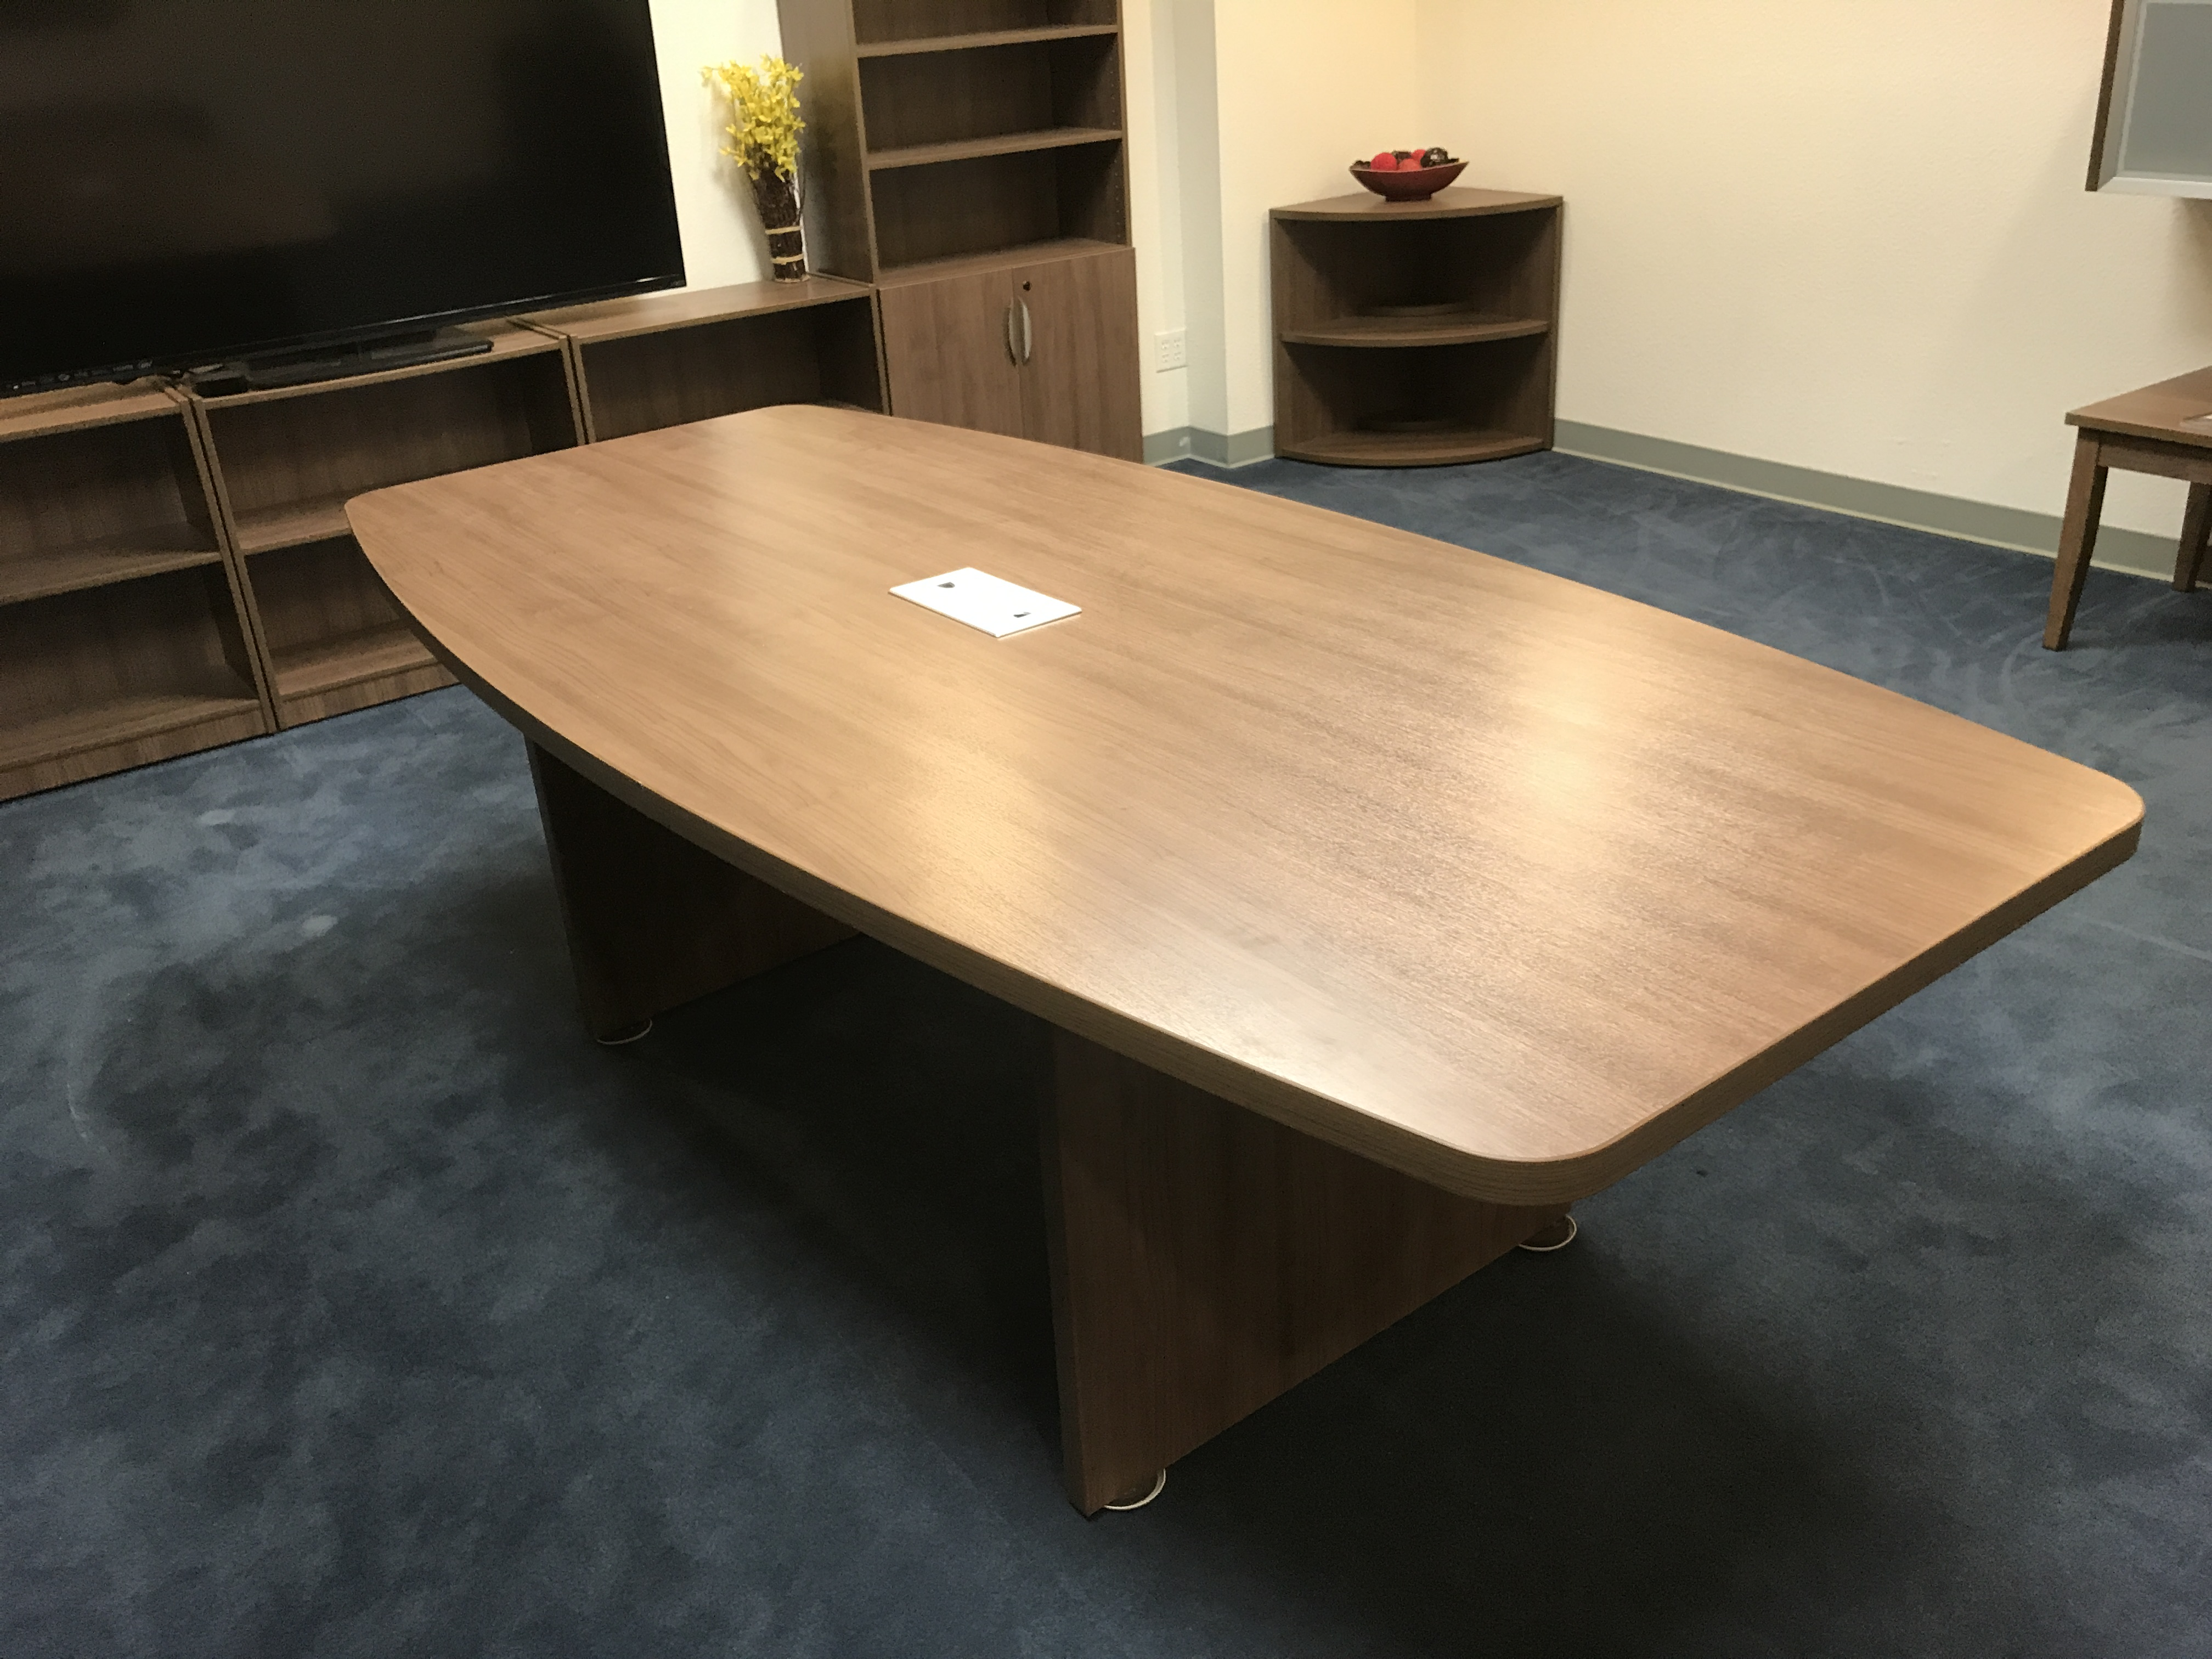 BOATSHAPE CONFERENCE TABLE Golden State Office Furniture - Desk with conference table